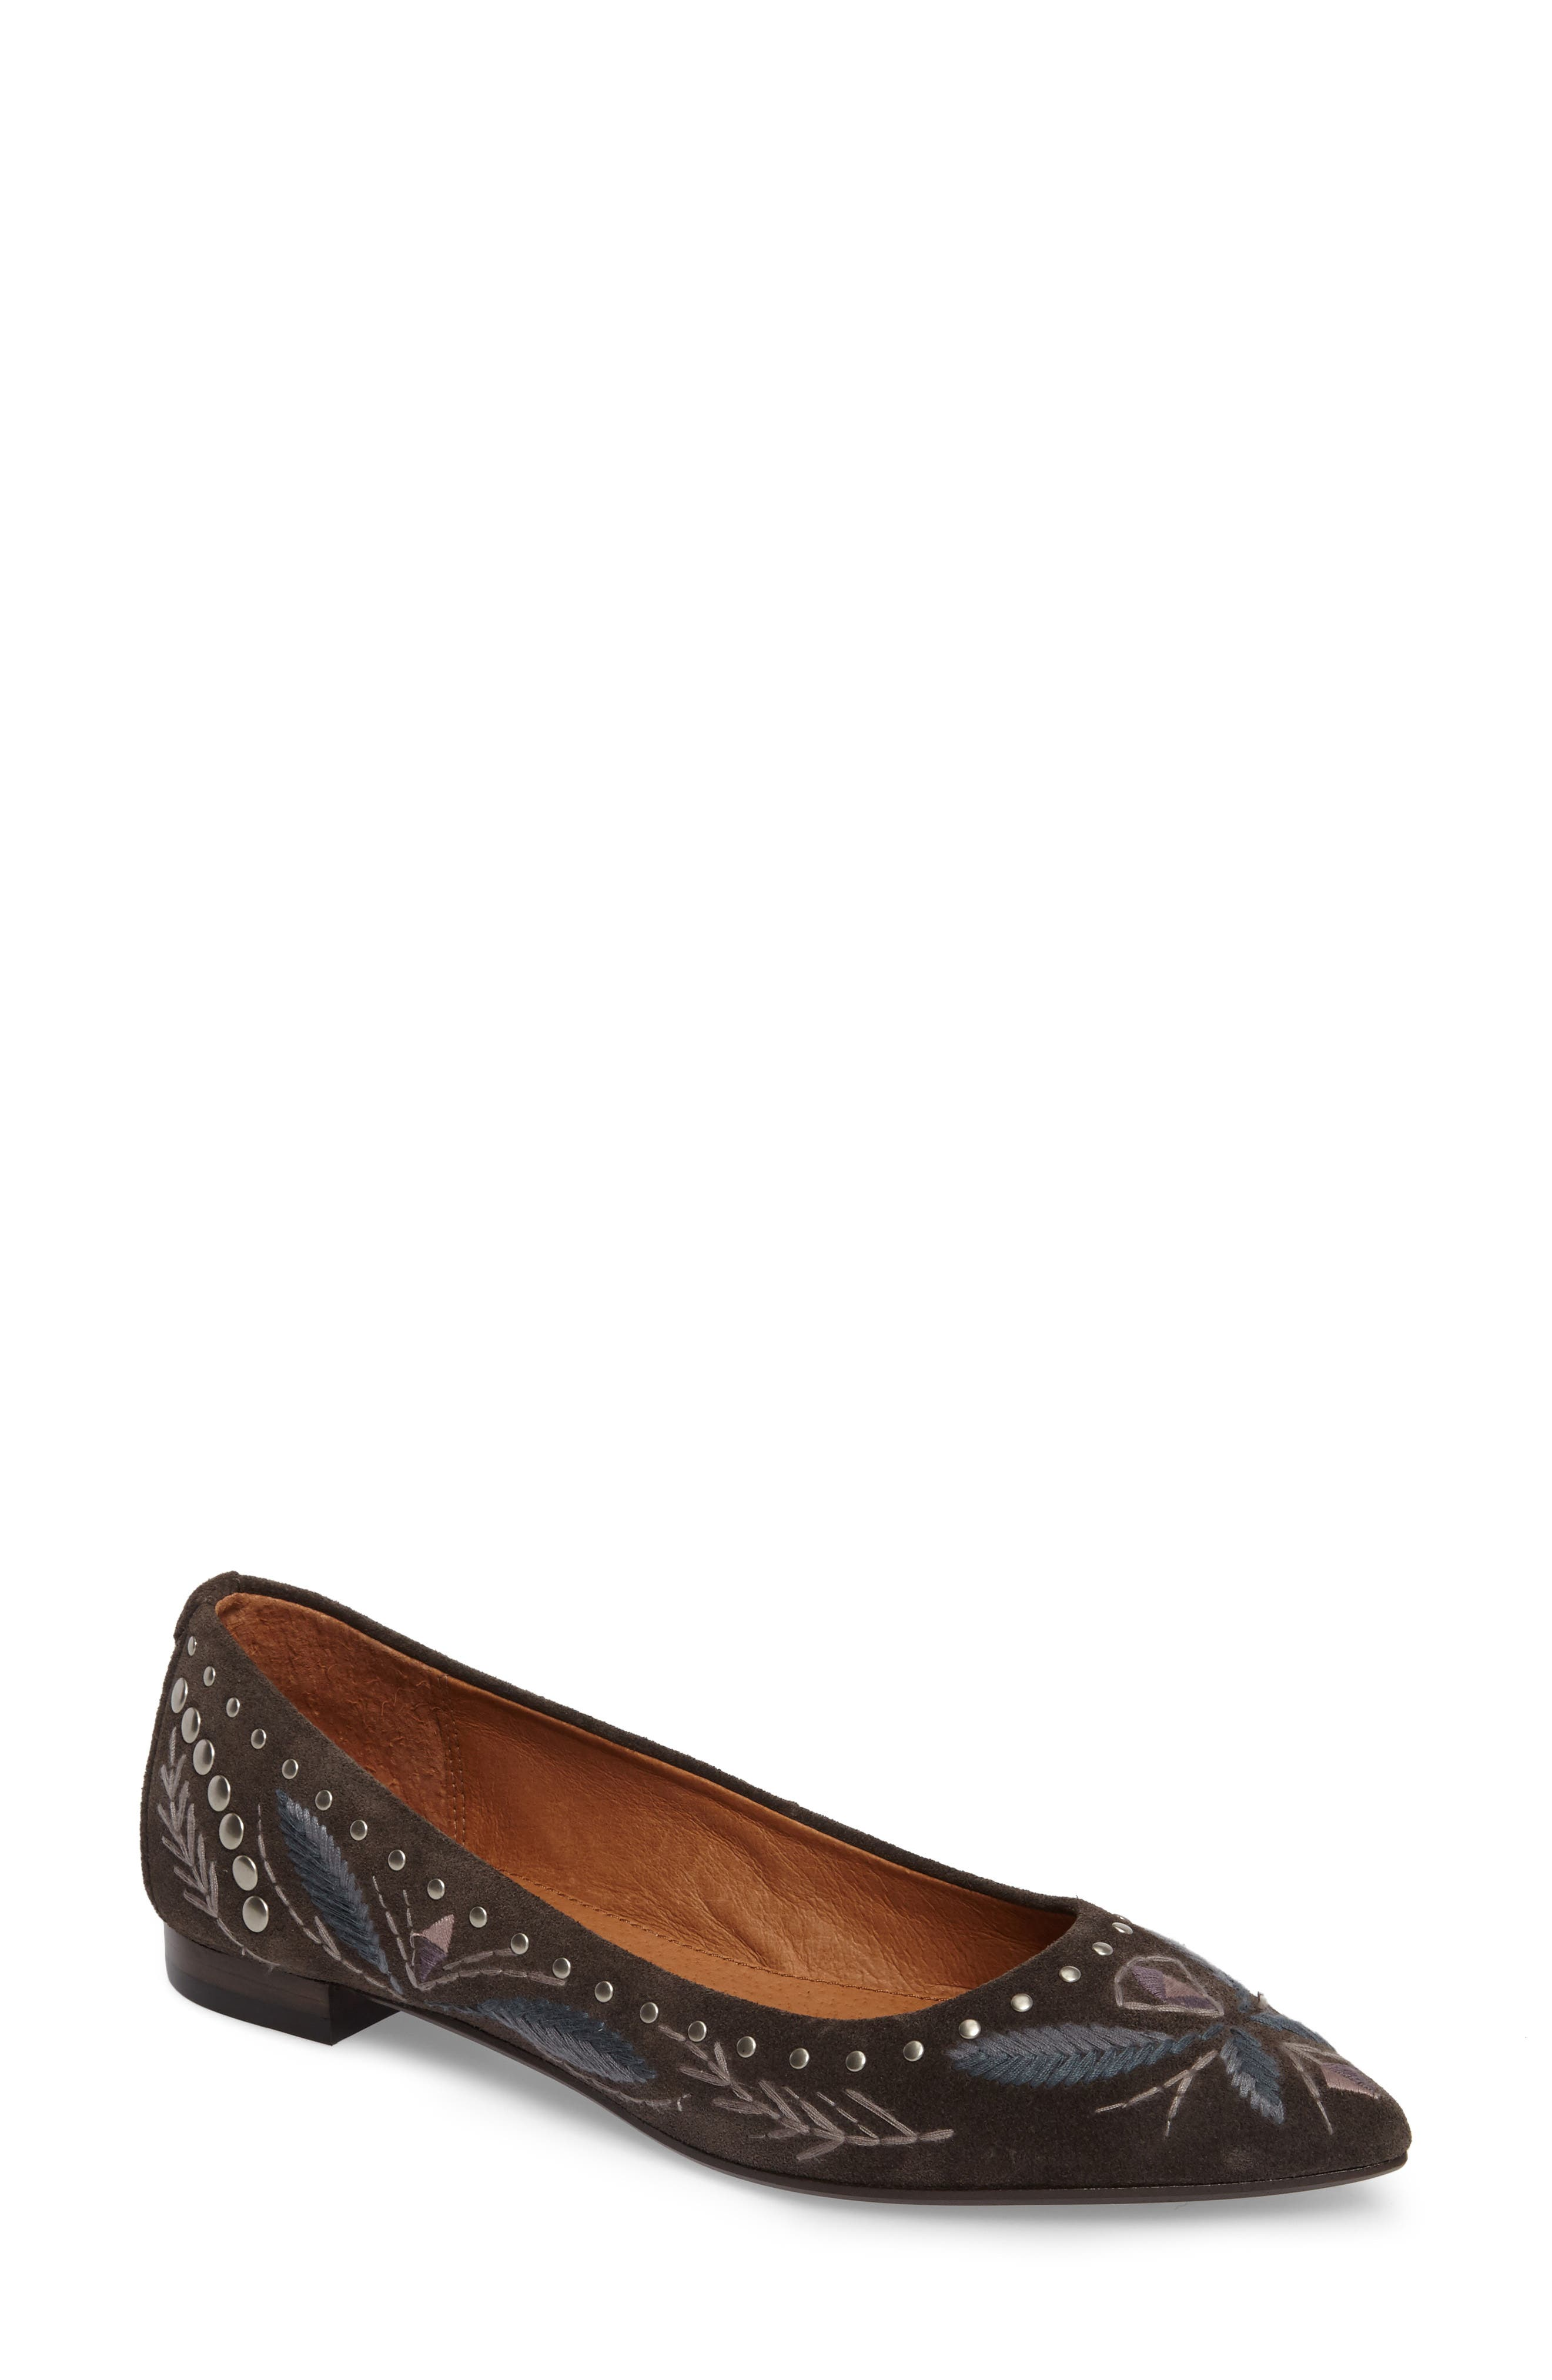 Sienna Embroidered Ballet Flat,                         Main,                         color, 030